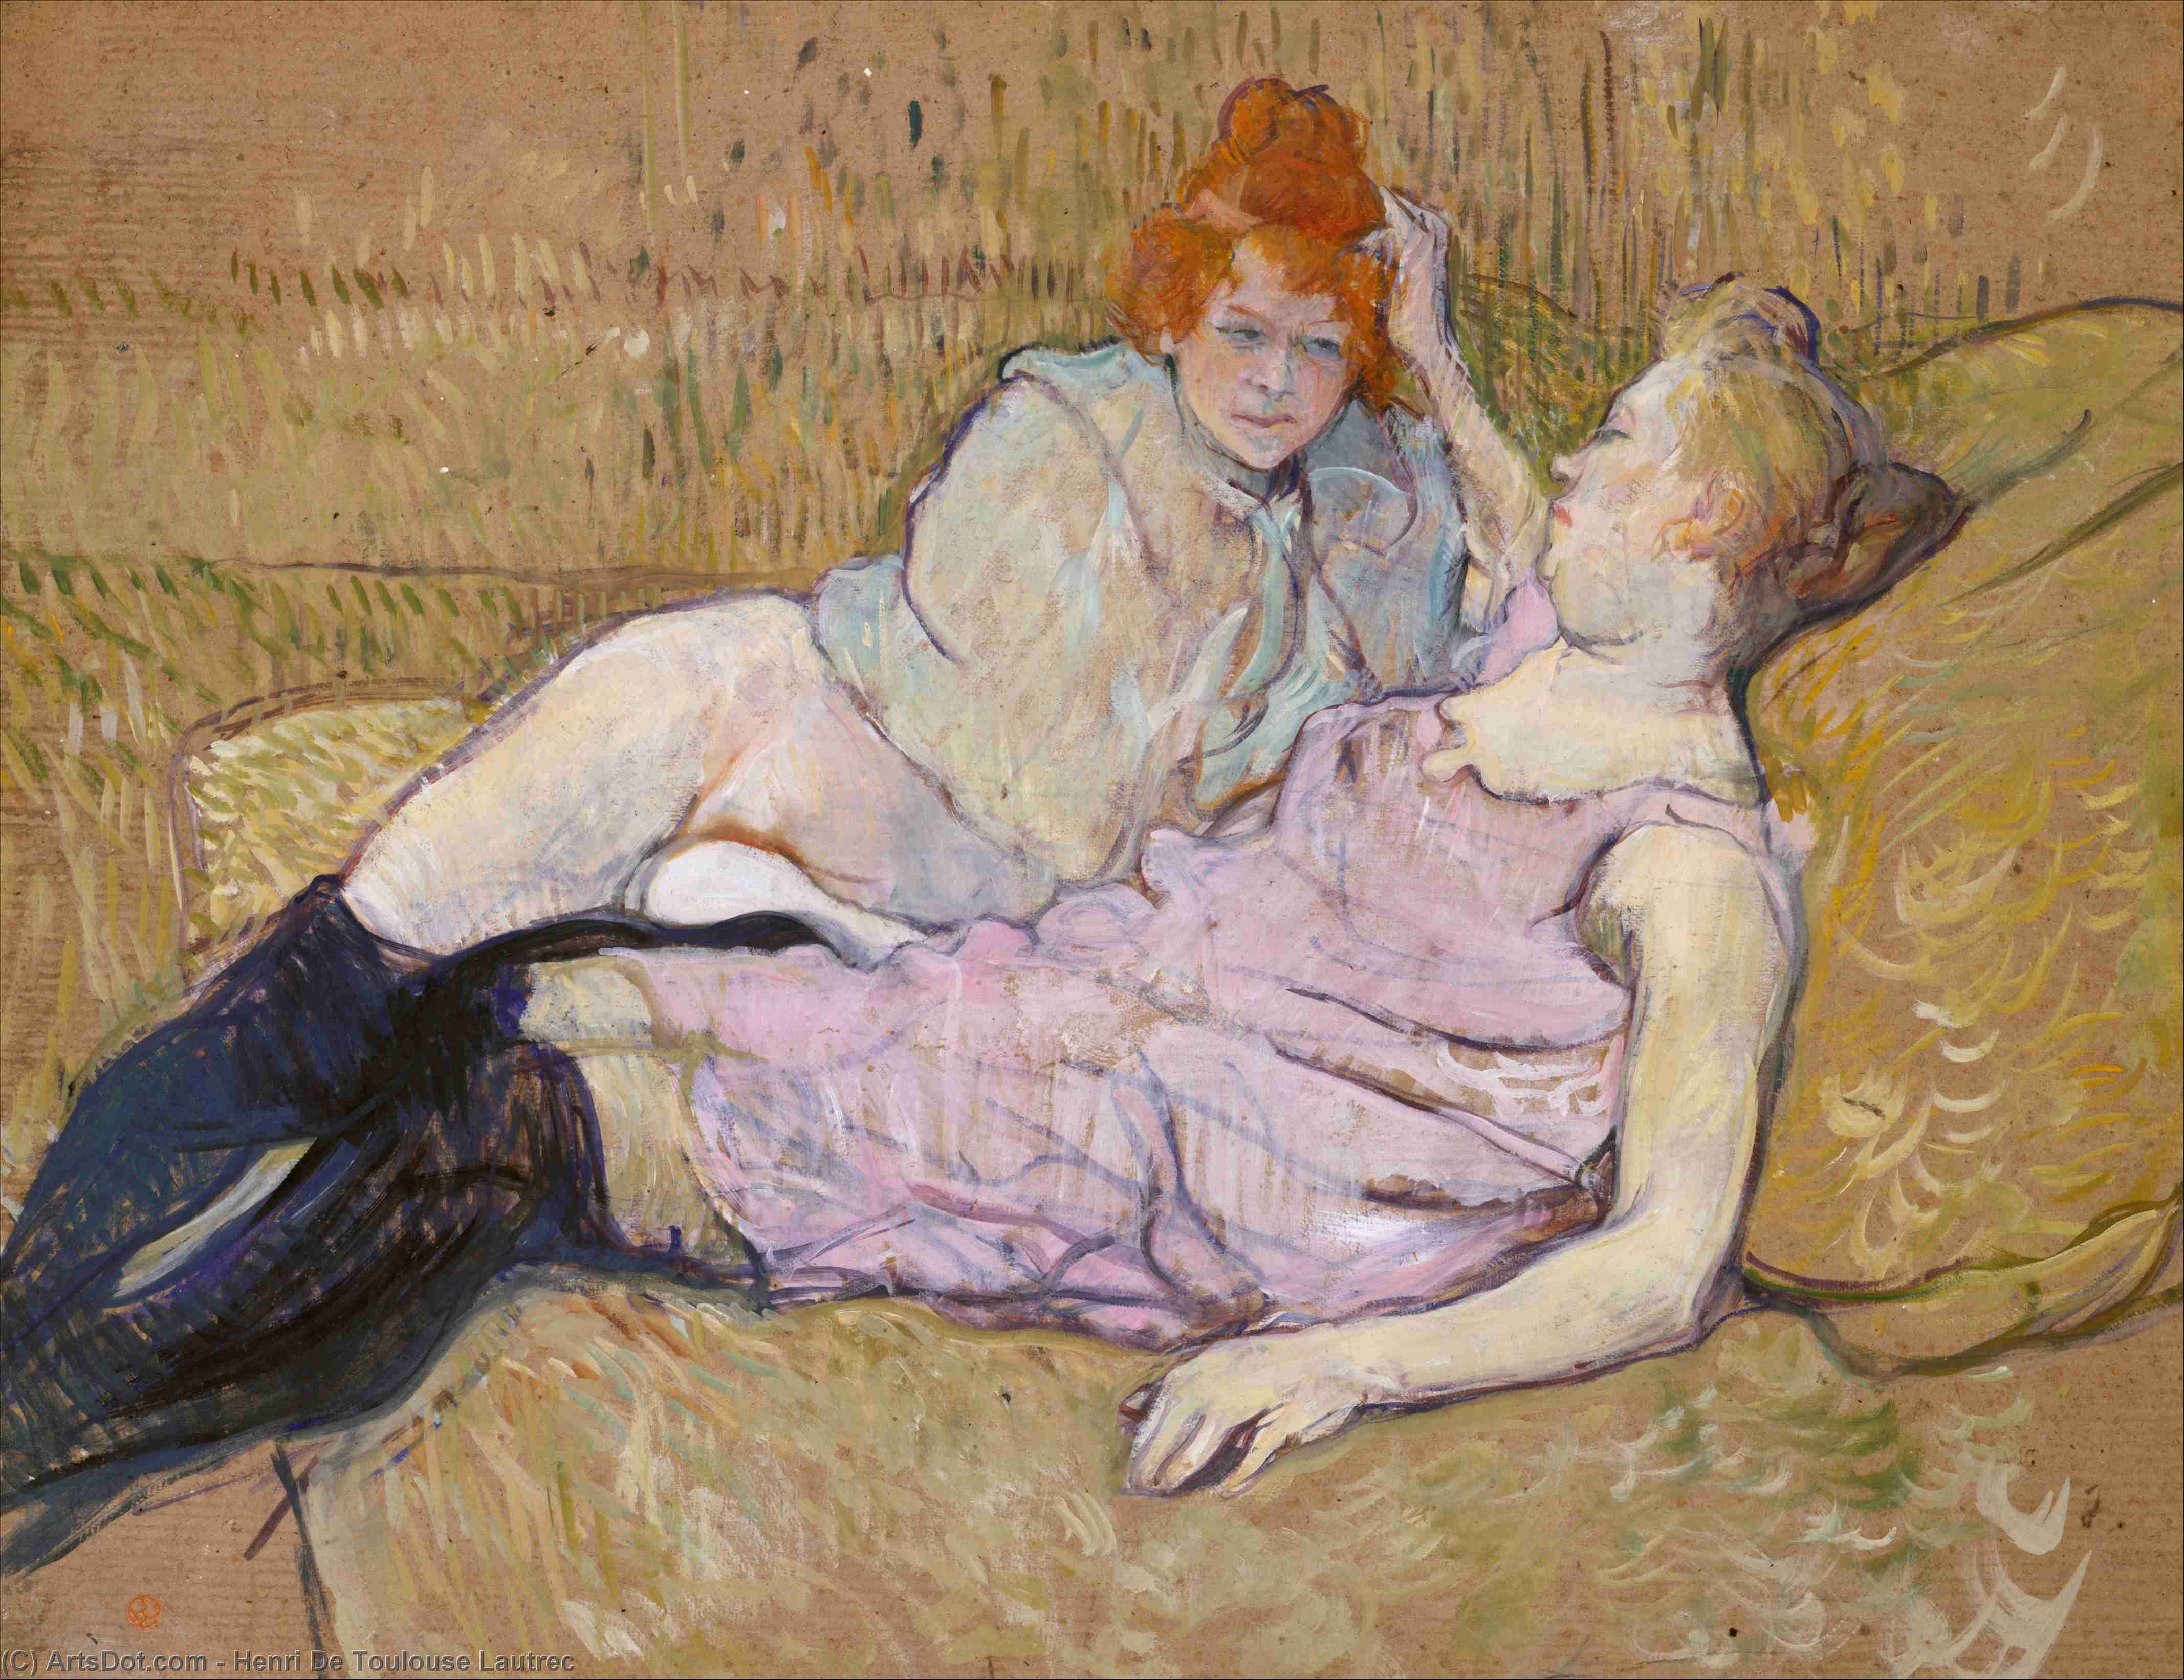 The Sofa, Oil by Henri De Toulouse Lautrec (1864-1901, France)